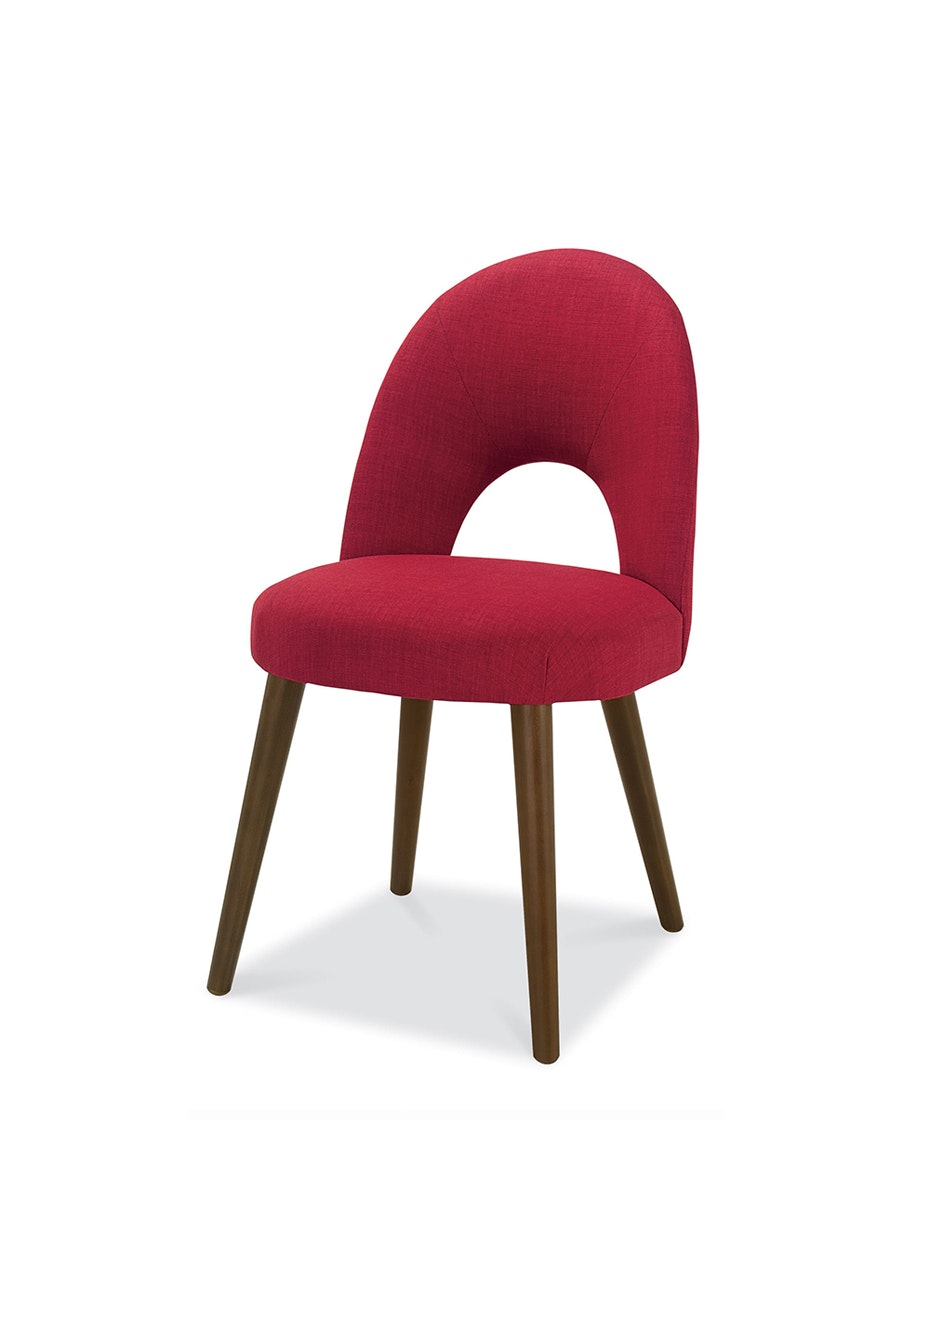 Furniture By Design - Oslo Chair- Walnut and Red